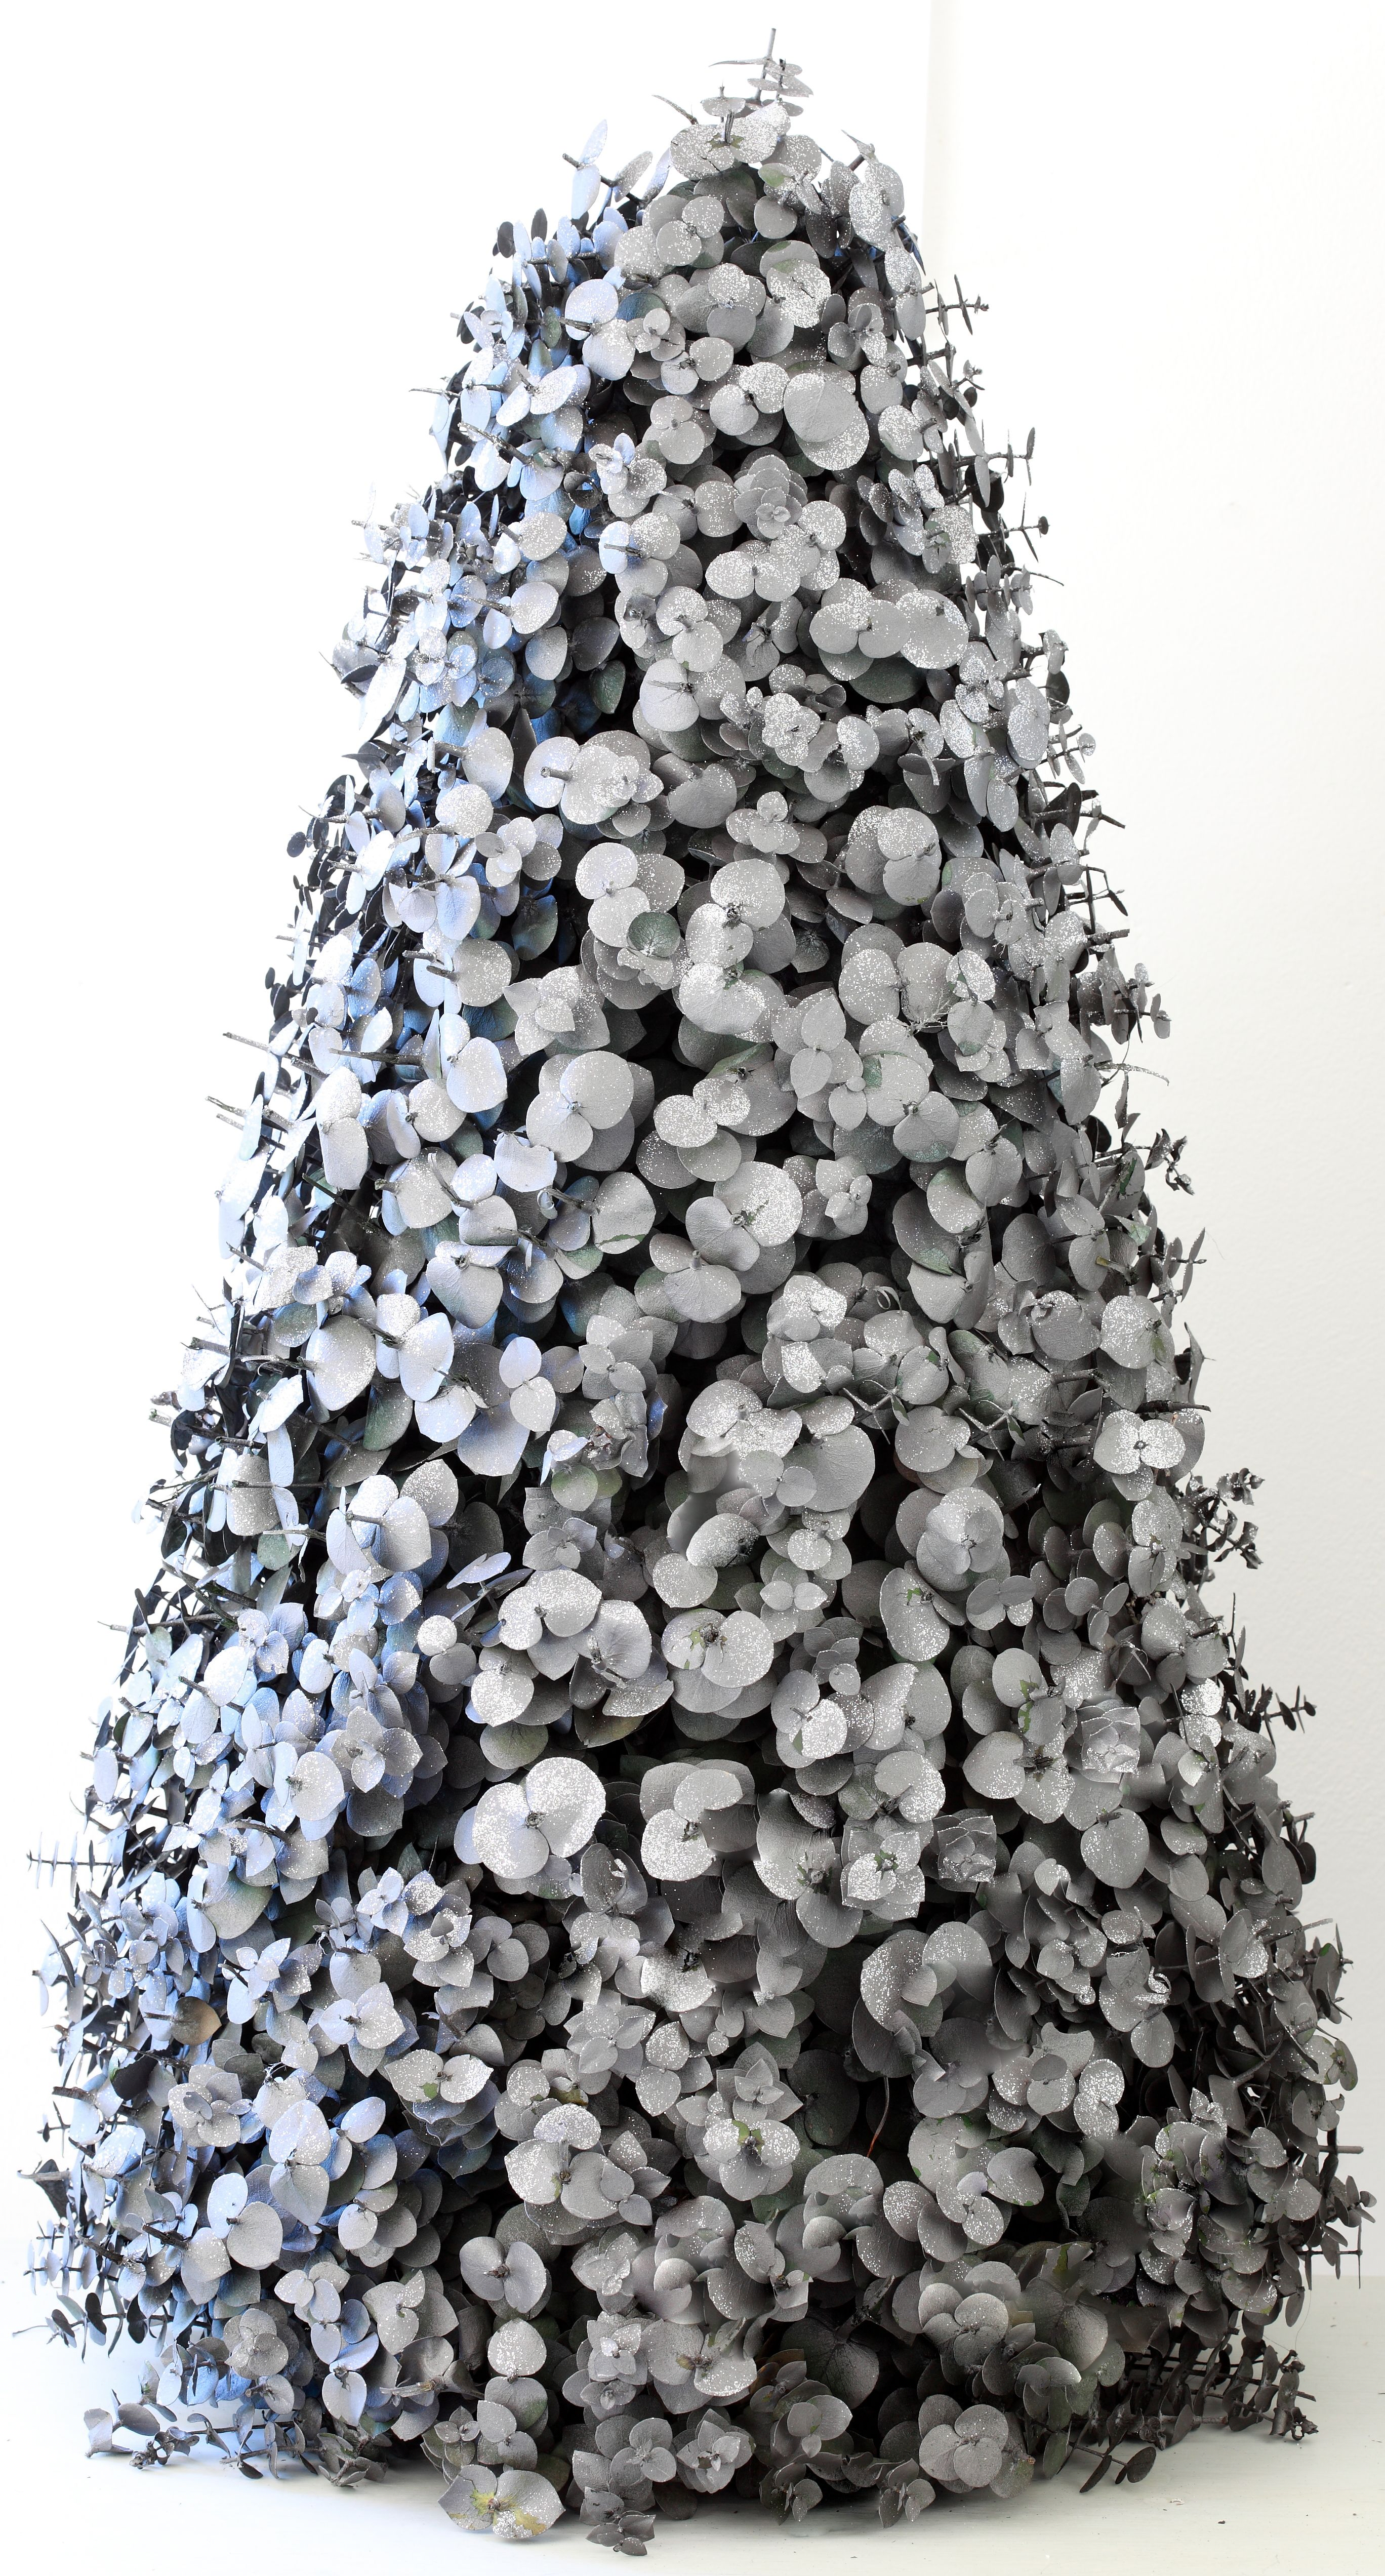 Silver Small Leaf Penny Gum Tree Www Topiary Co Za Beautiful Christmas Topiary Trees Christmas Decorations